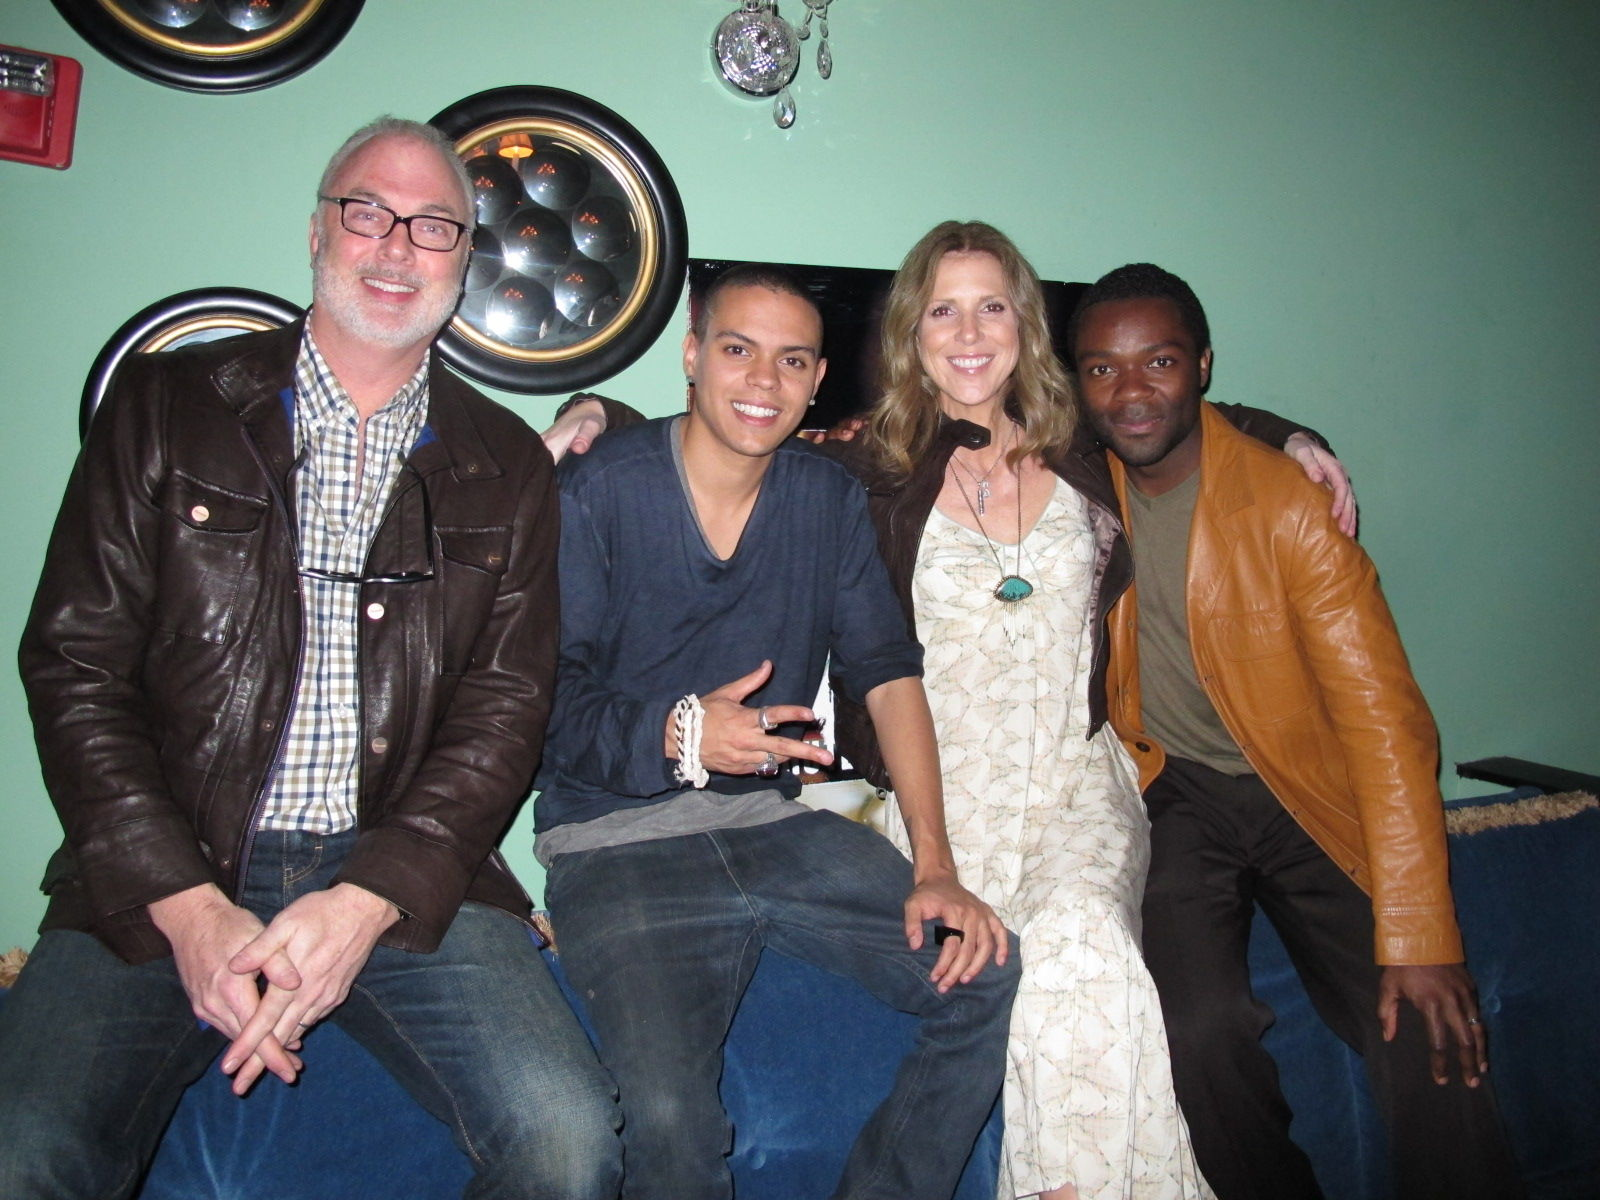 Dr. Gilreath, Evan Ross, Channie Gilreath and David Oyelowo at the film's premiere at the SXSW Film Festival in April 2011.